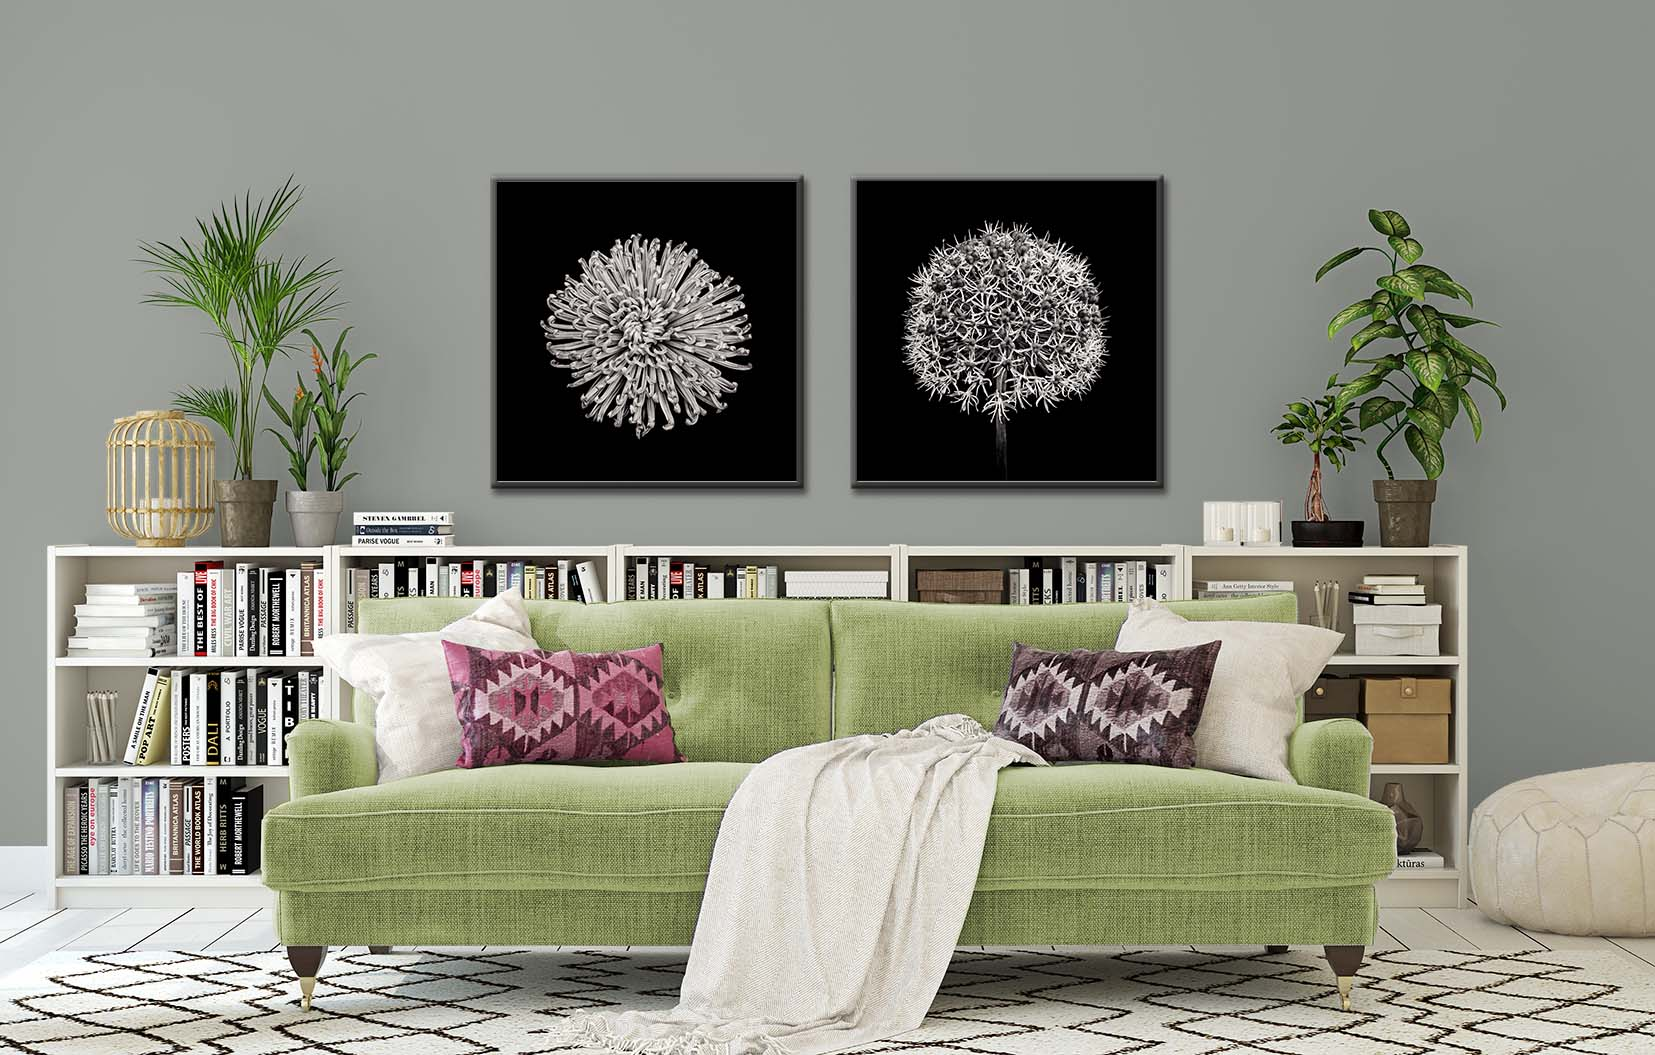 Two black and white floral photographs, one of a chrysanthamum and the other an allium 'White Empress' by fine art photographer Paul Coghlin